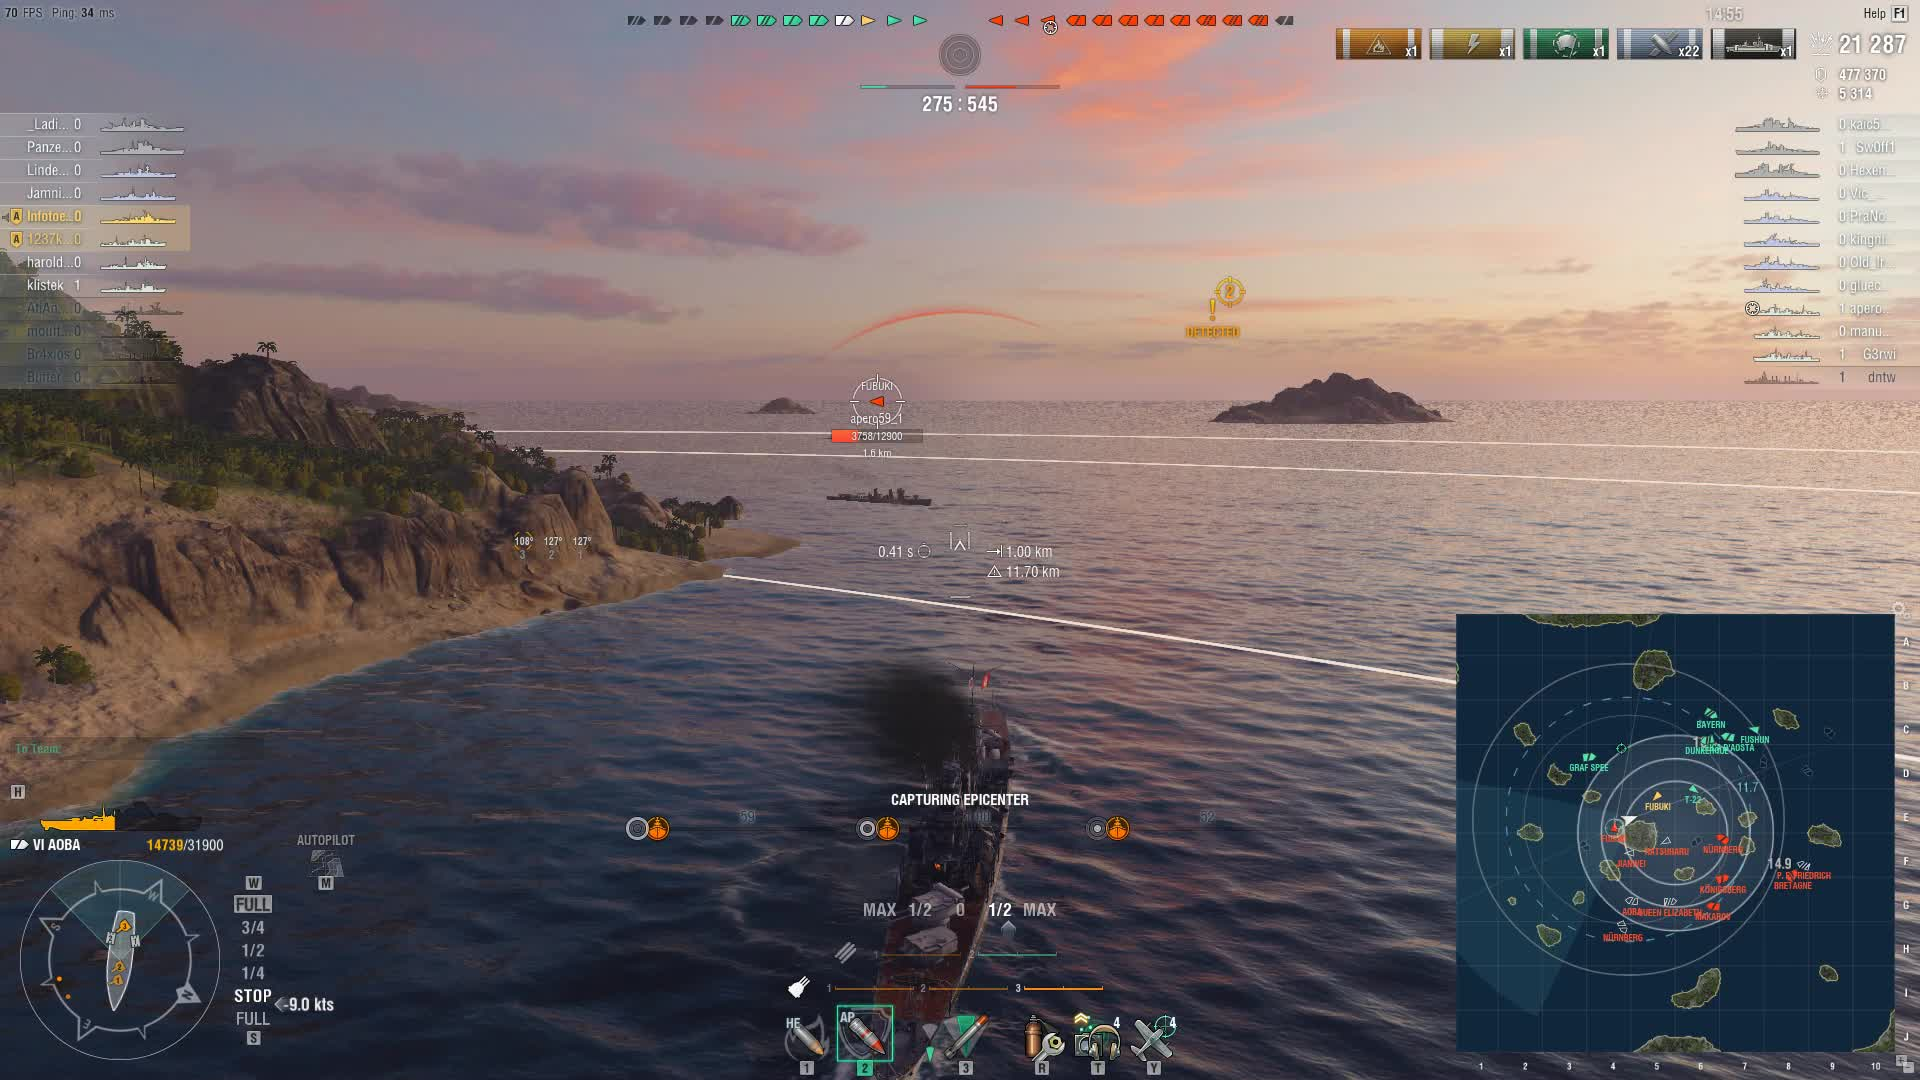 worldofwarships, vlc-record-2018-12-28-11h45m22s-World of Warships 2018.12.28 - 11.44.09.02.DVR.mp4- GIFs